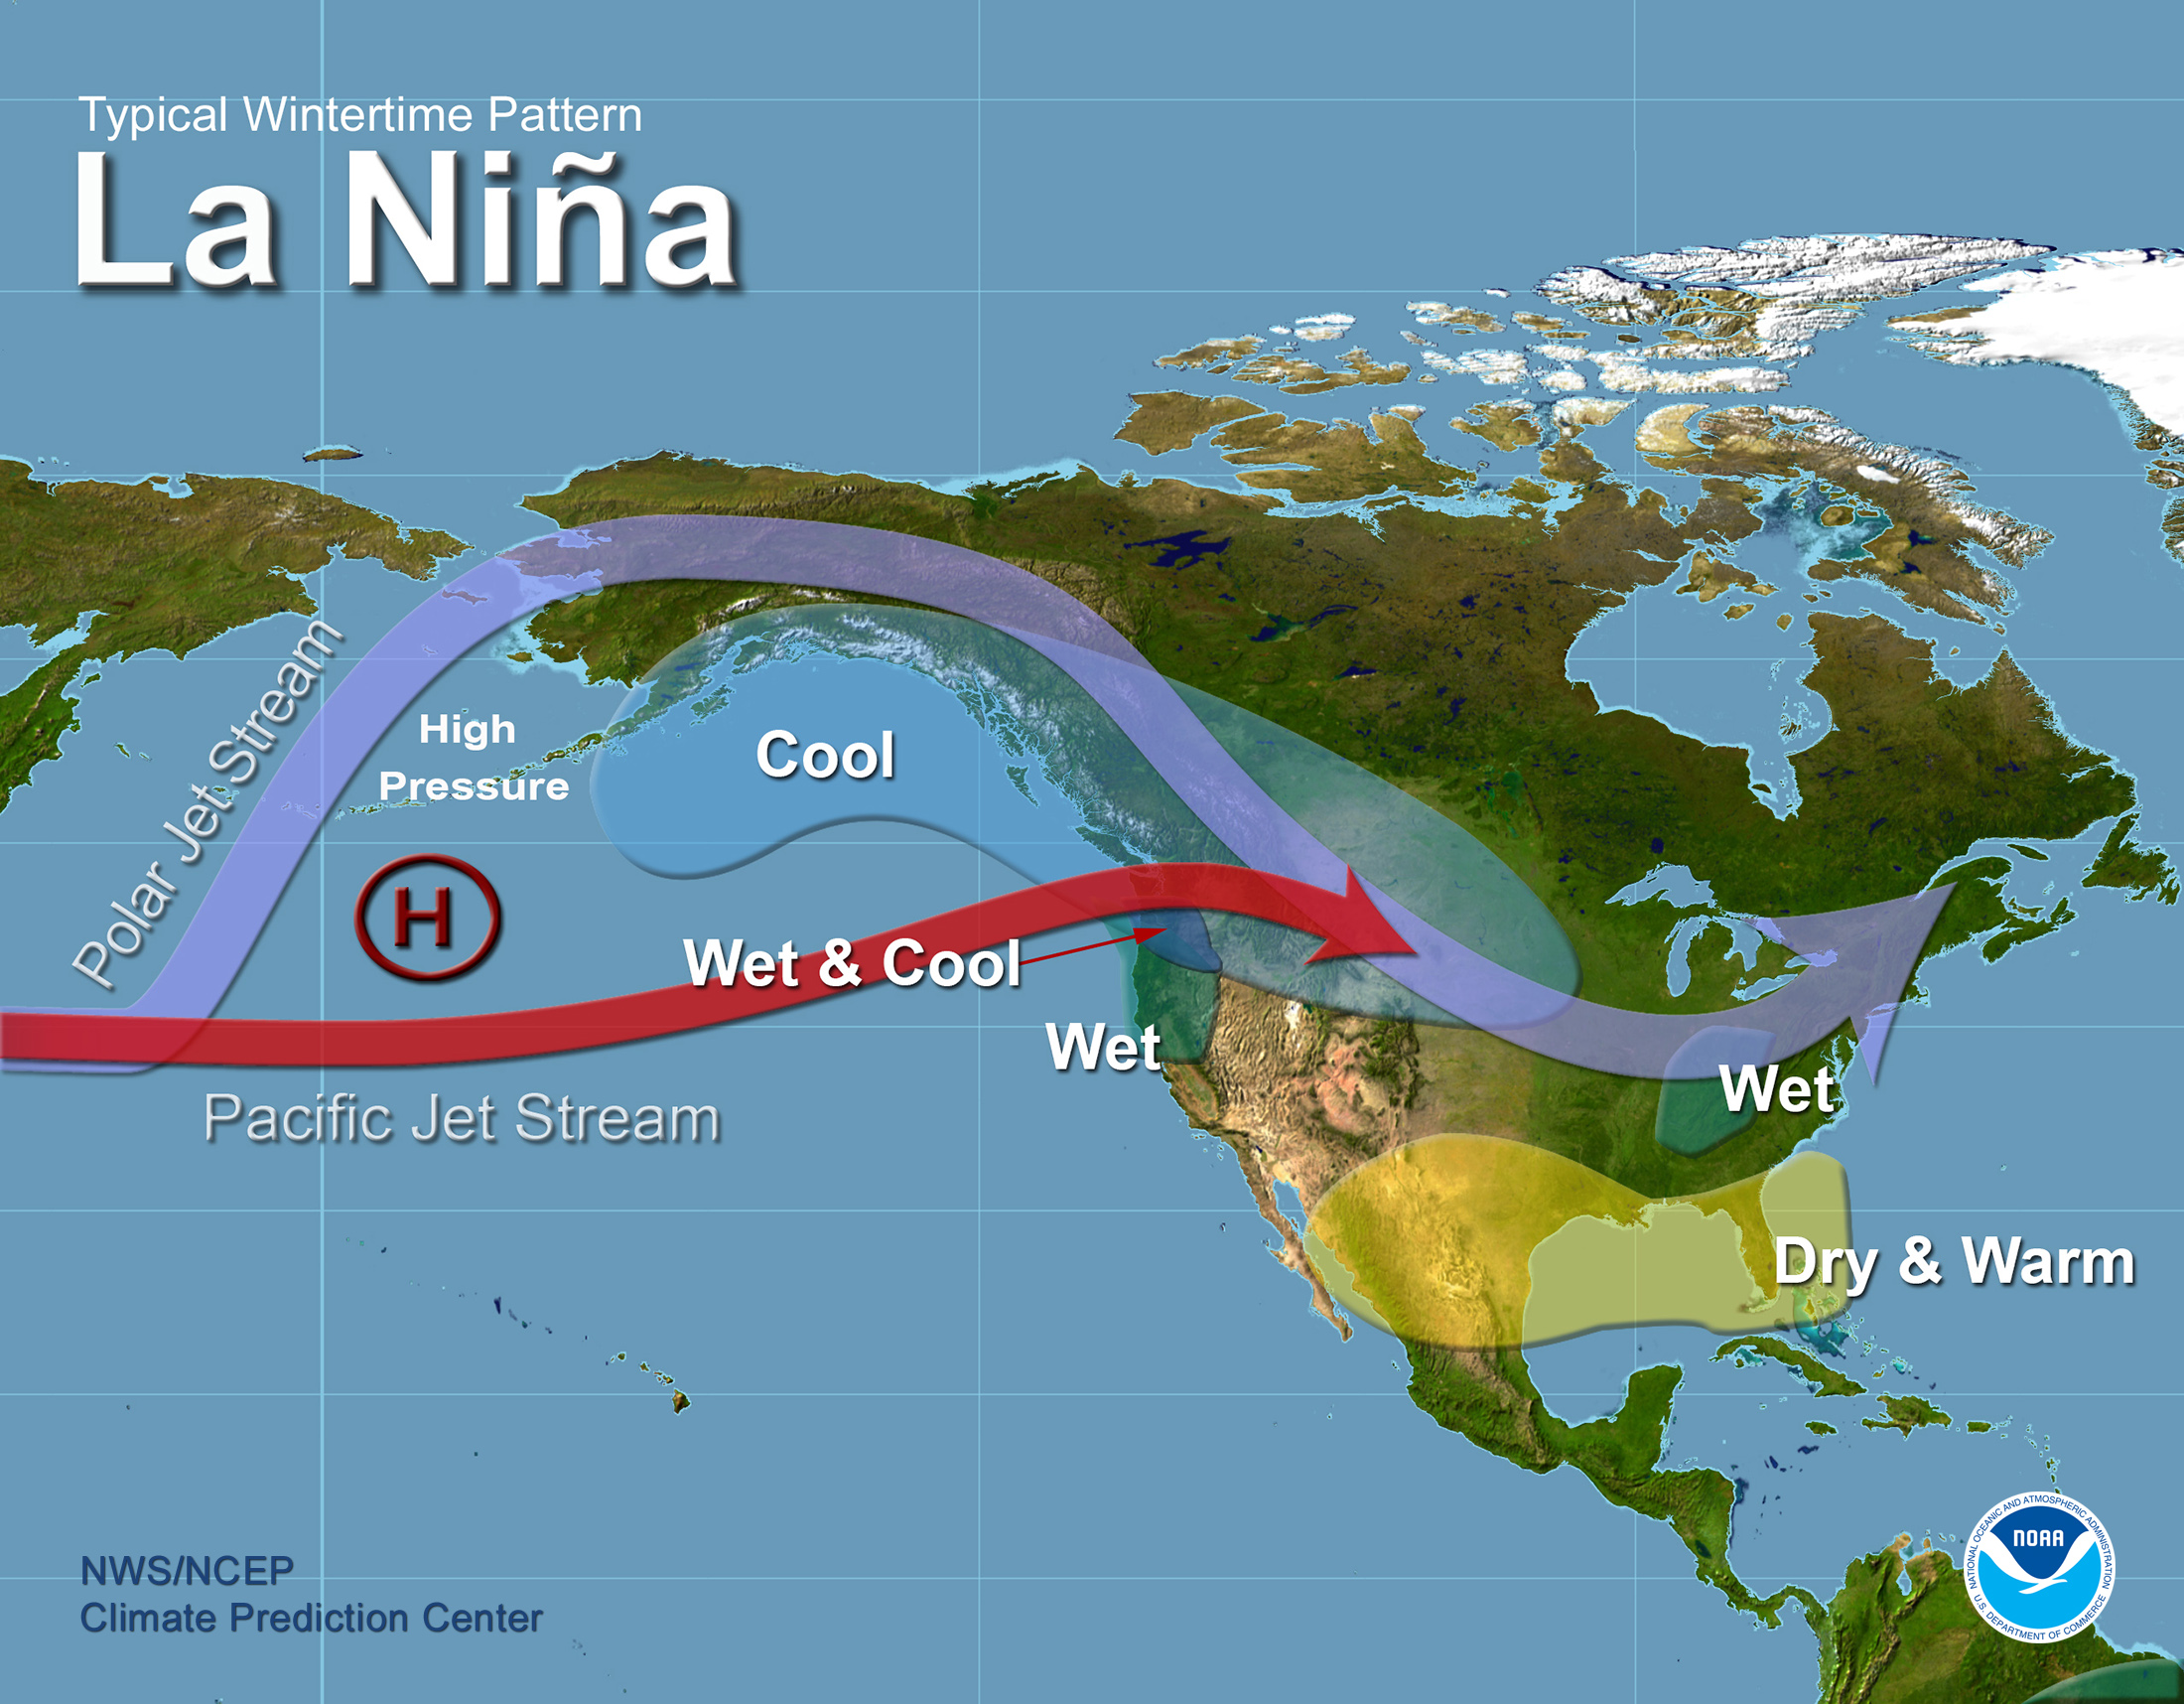 NOAA's Official May La Nina Update: Everything You Need to Know About The Coming La Nina - SnowBrains